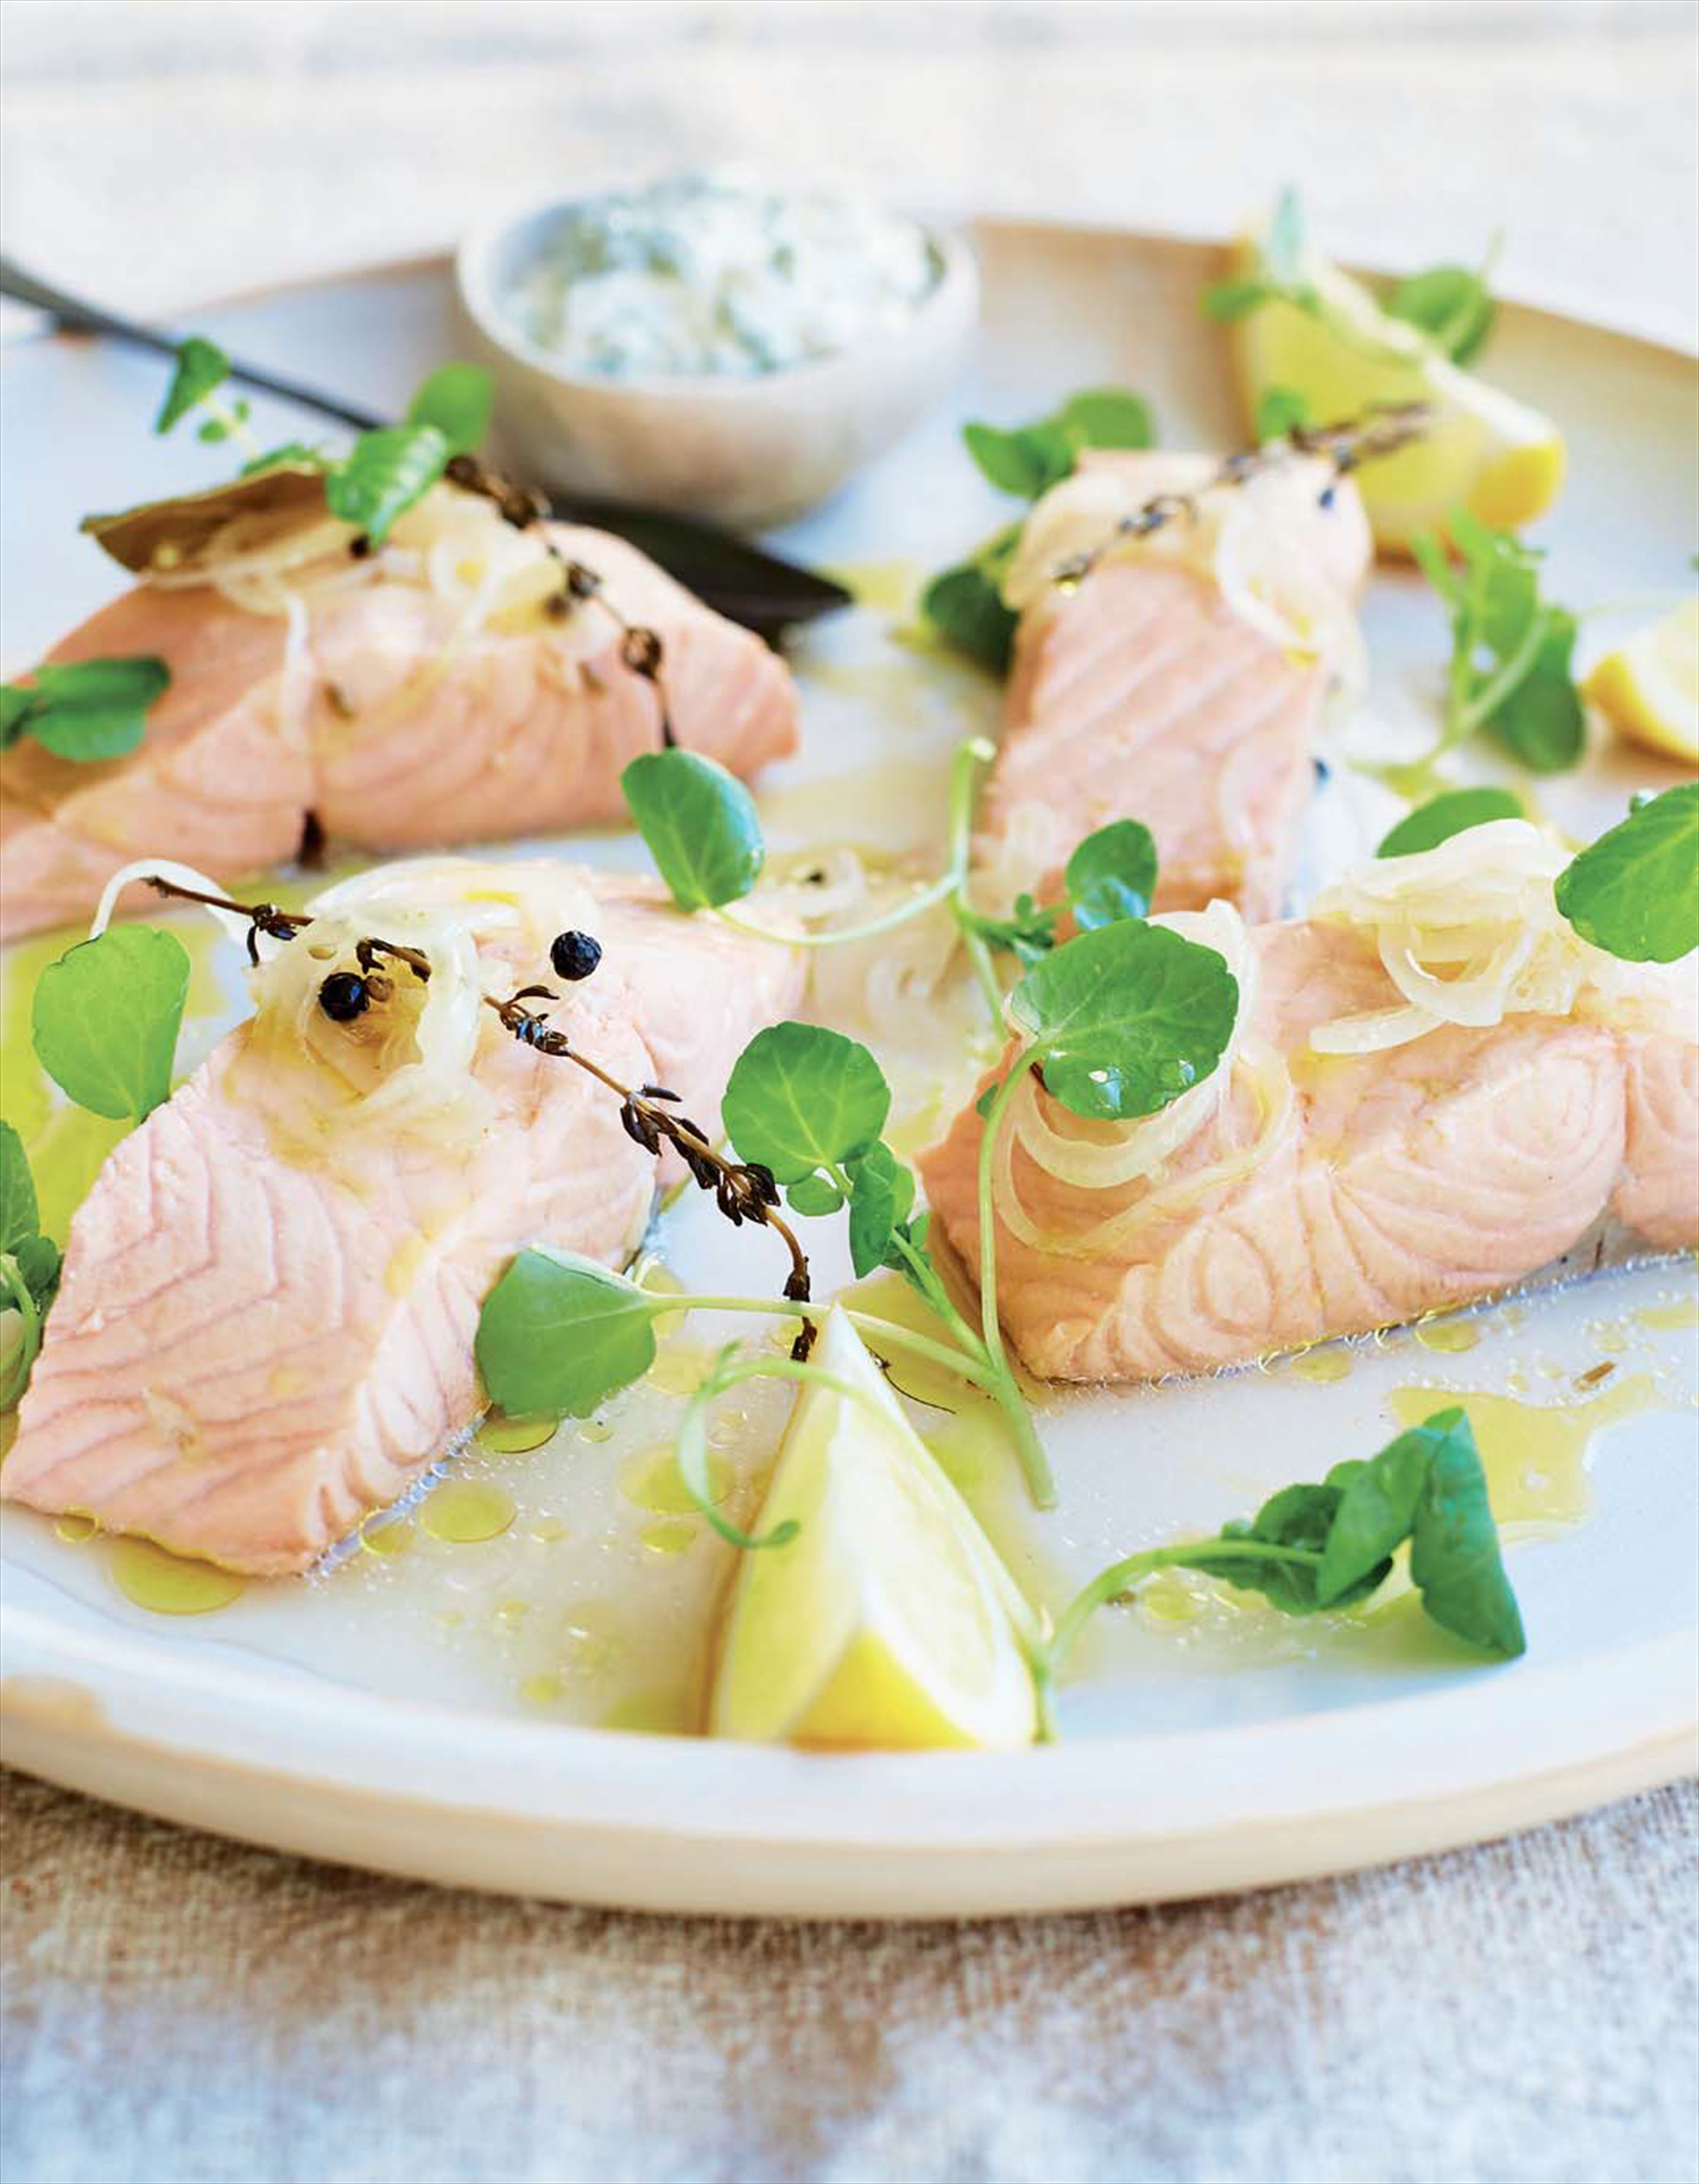 Poached salmon, watercress and olive oil hollandaise